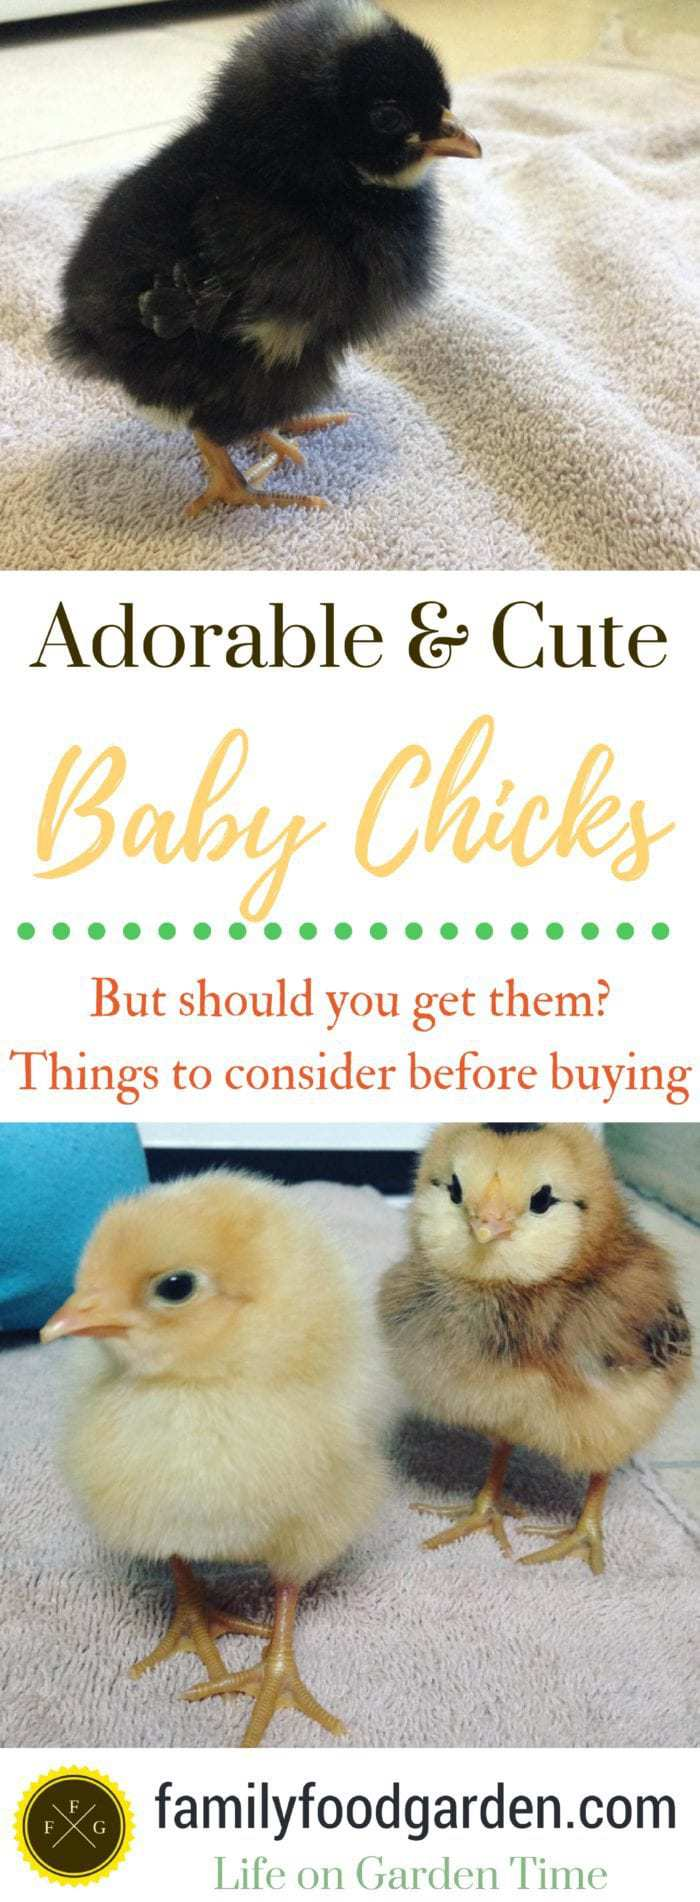 Things to think about before buying baby chicks